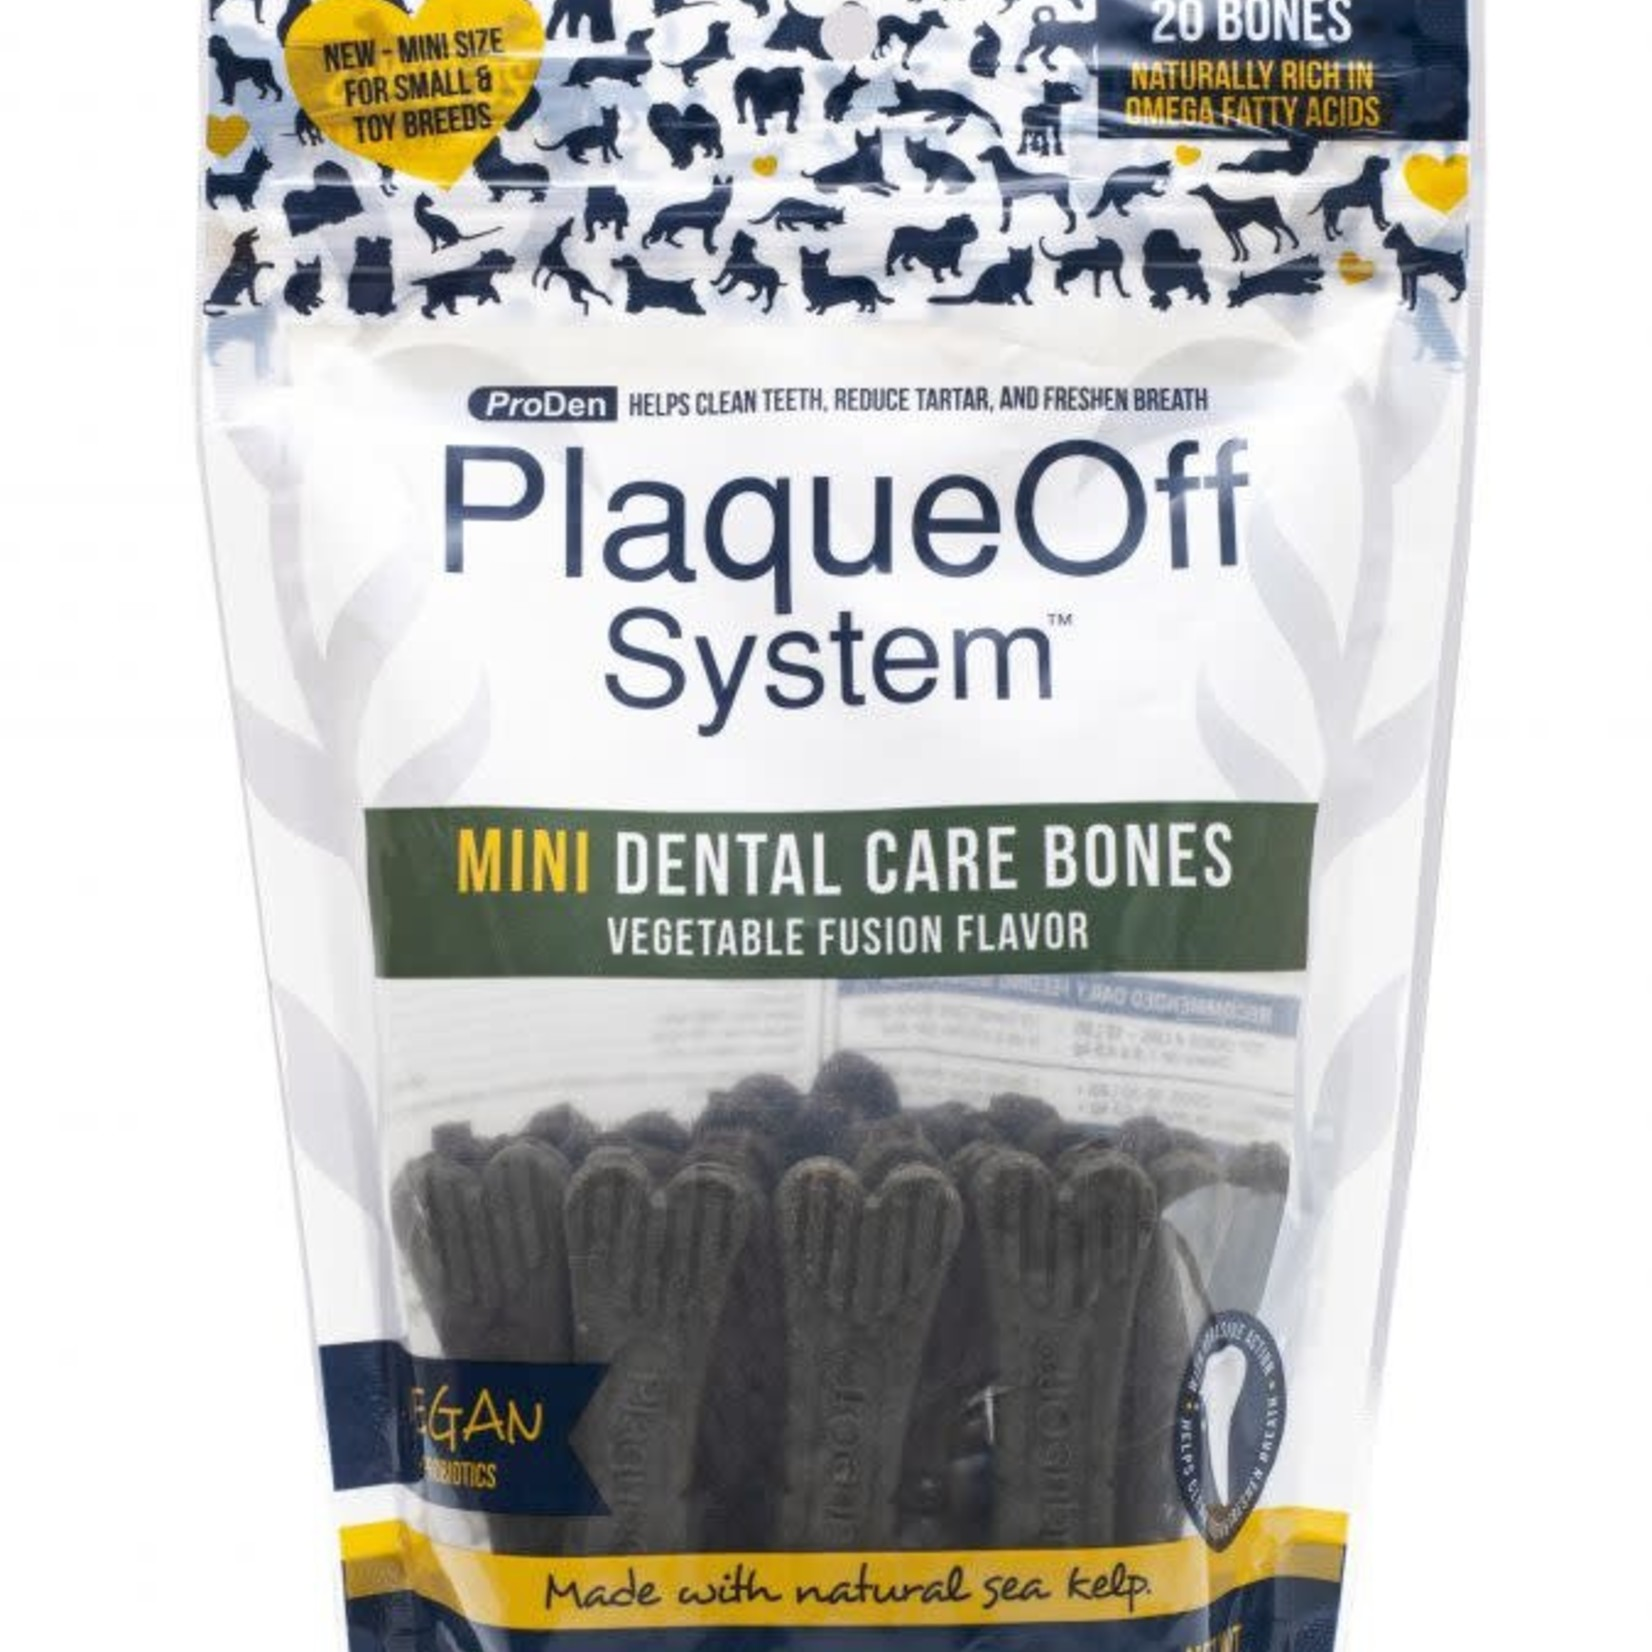 ProDen Plaqueoff Proden Dog Mini Dental Bone Veggie Fusion 12 OZ